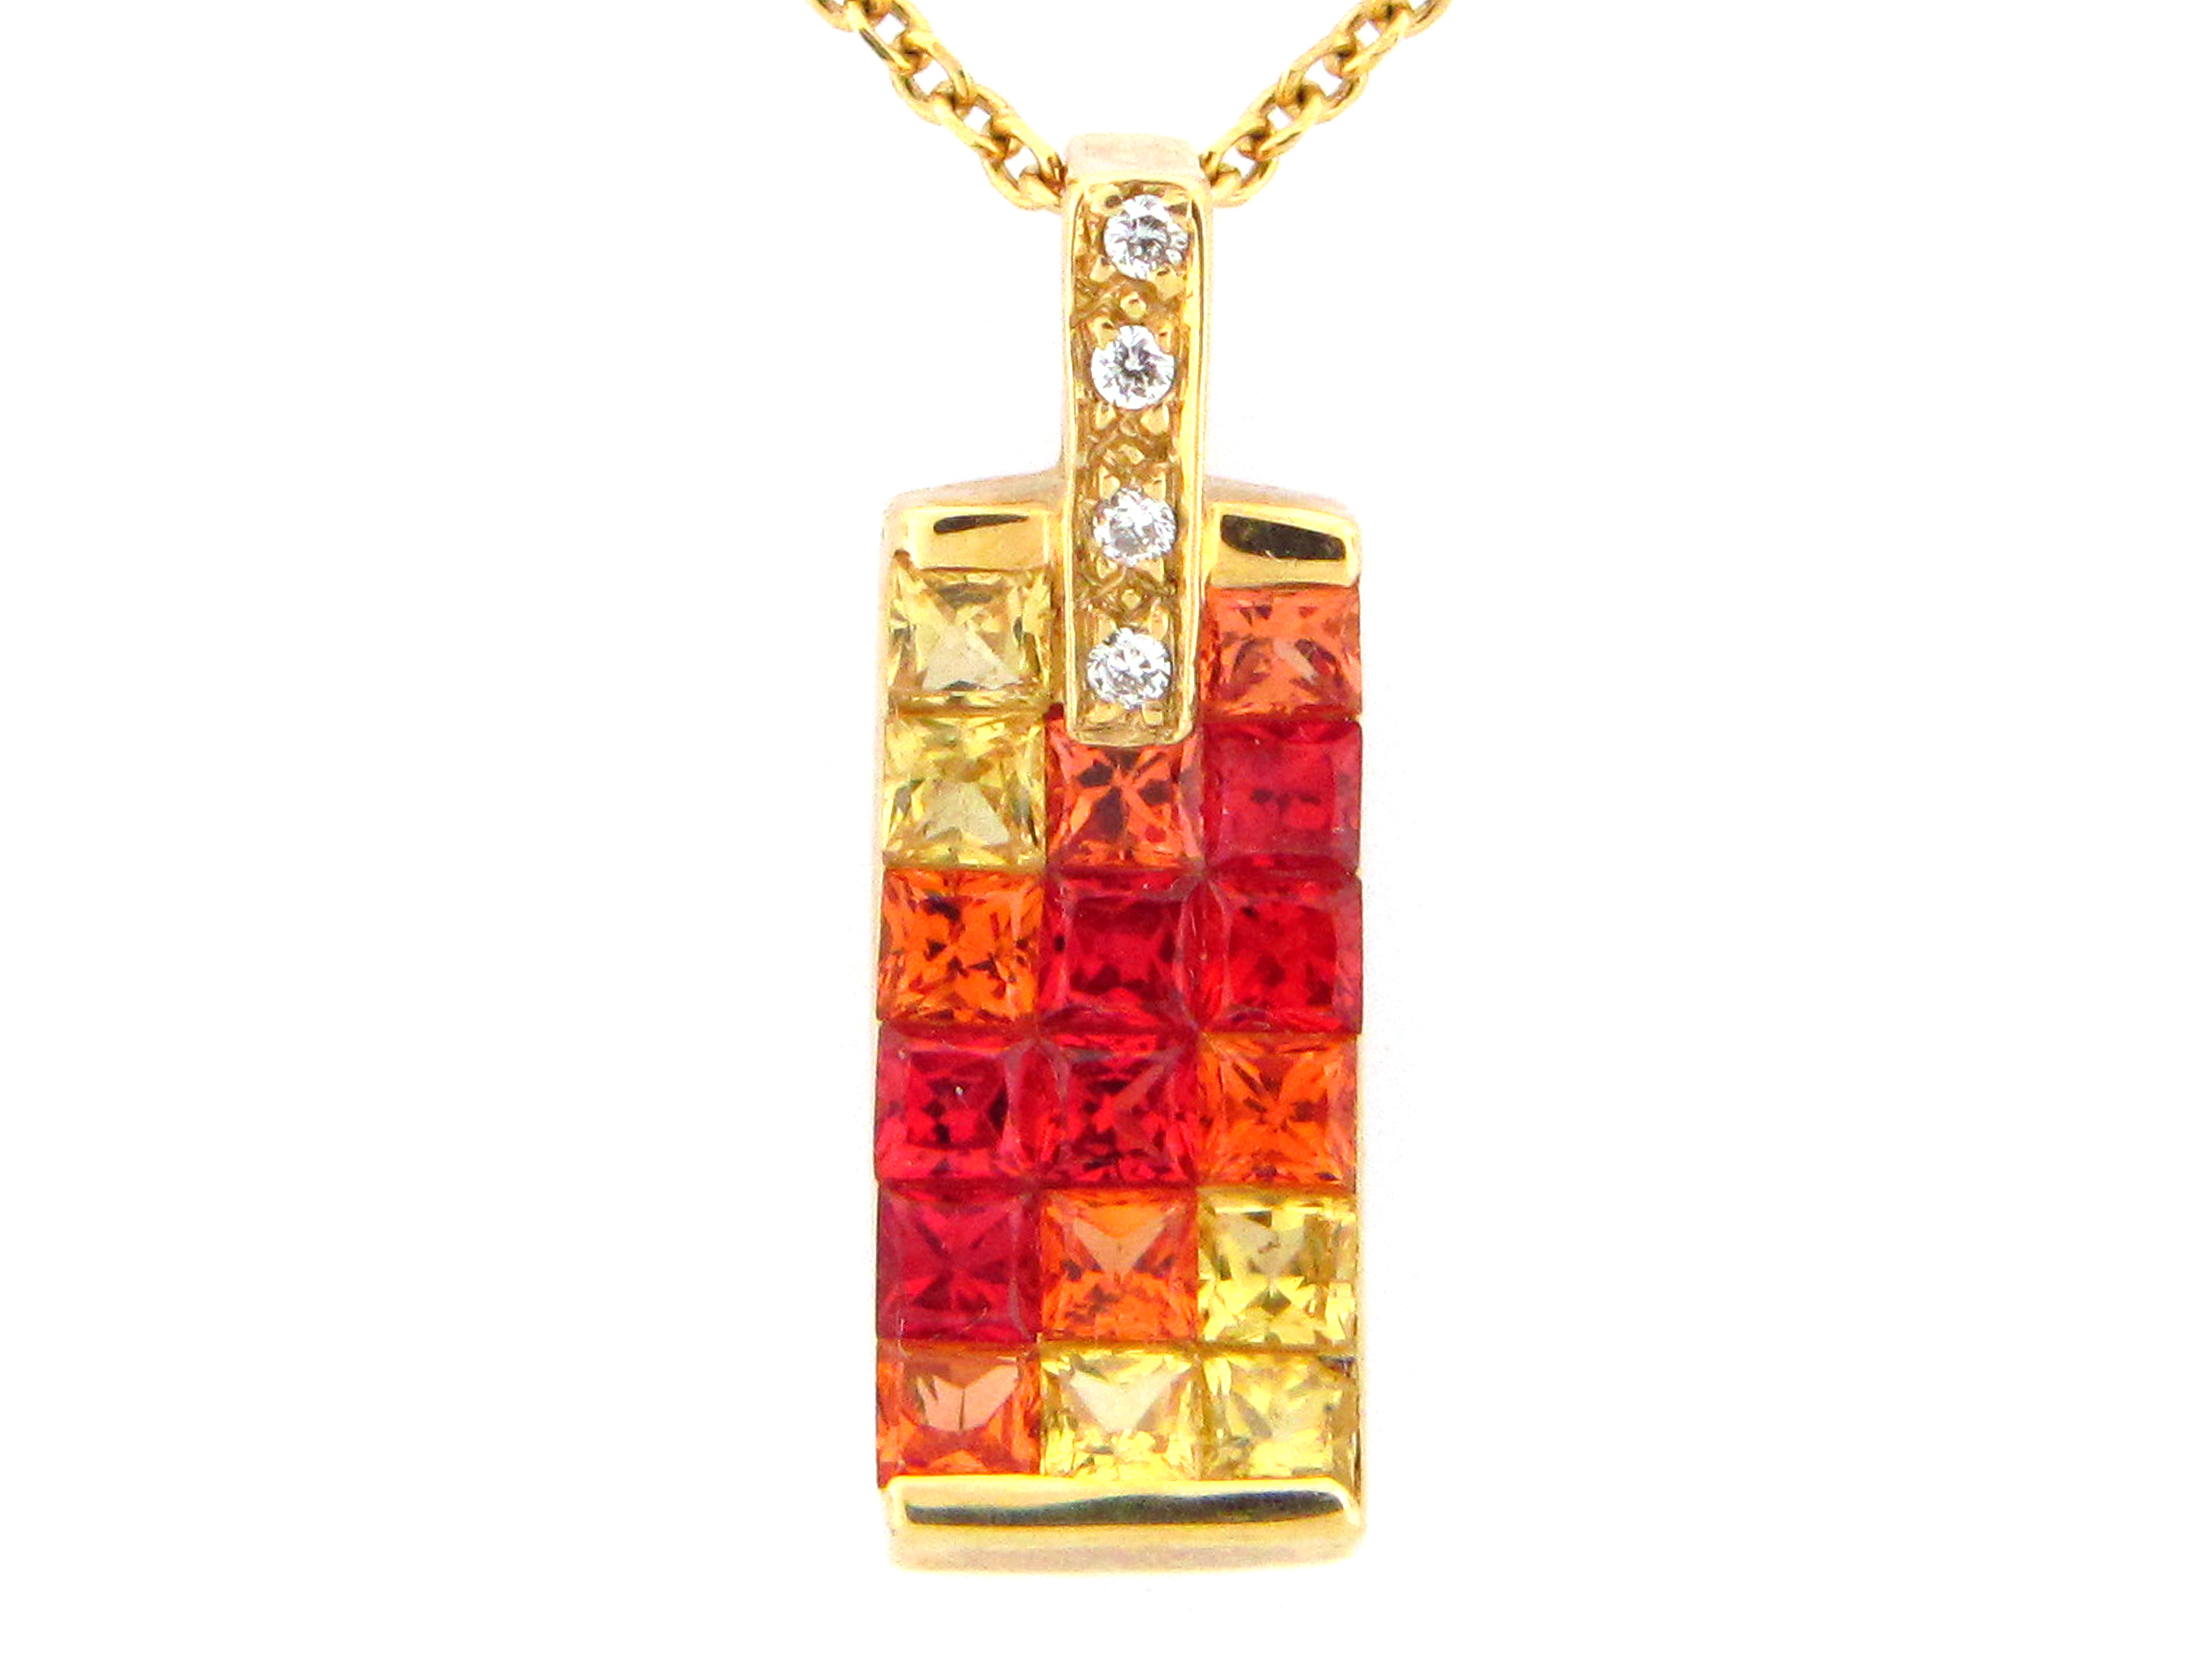 Exotic - Shades of Orange Sapphire Pendant